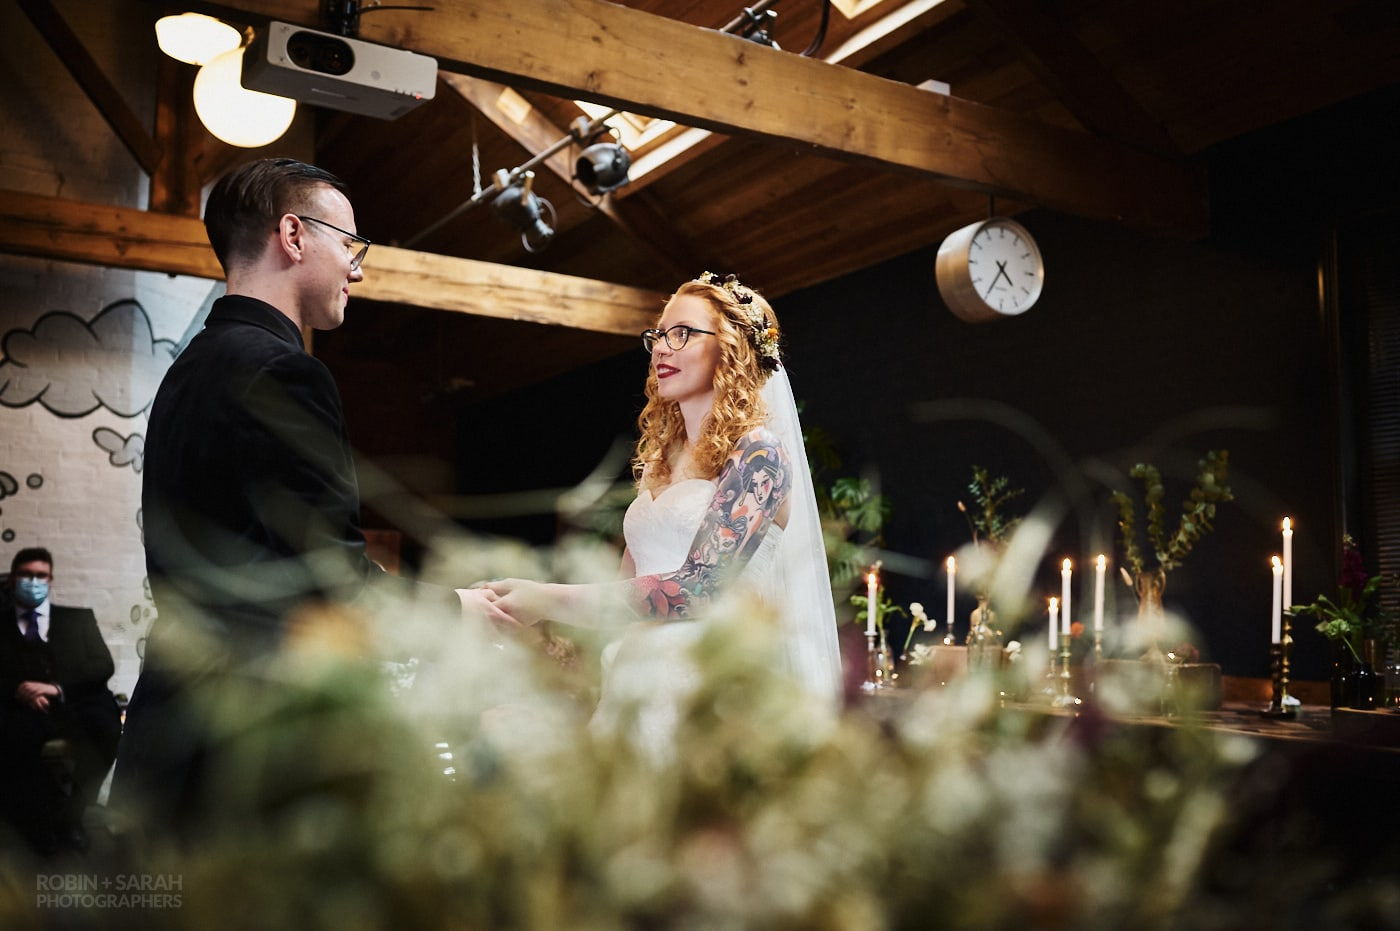 Couple get married during ceremony at The Chimney House